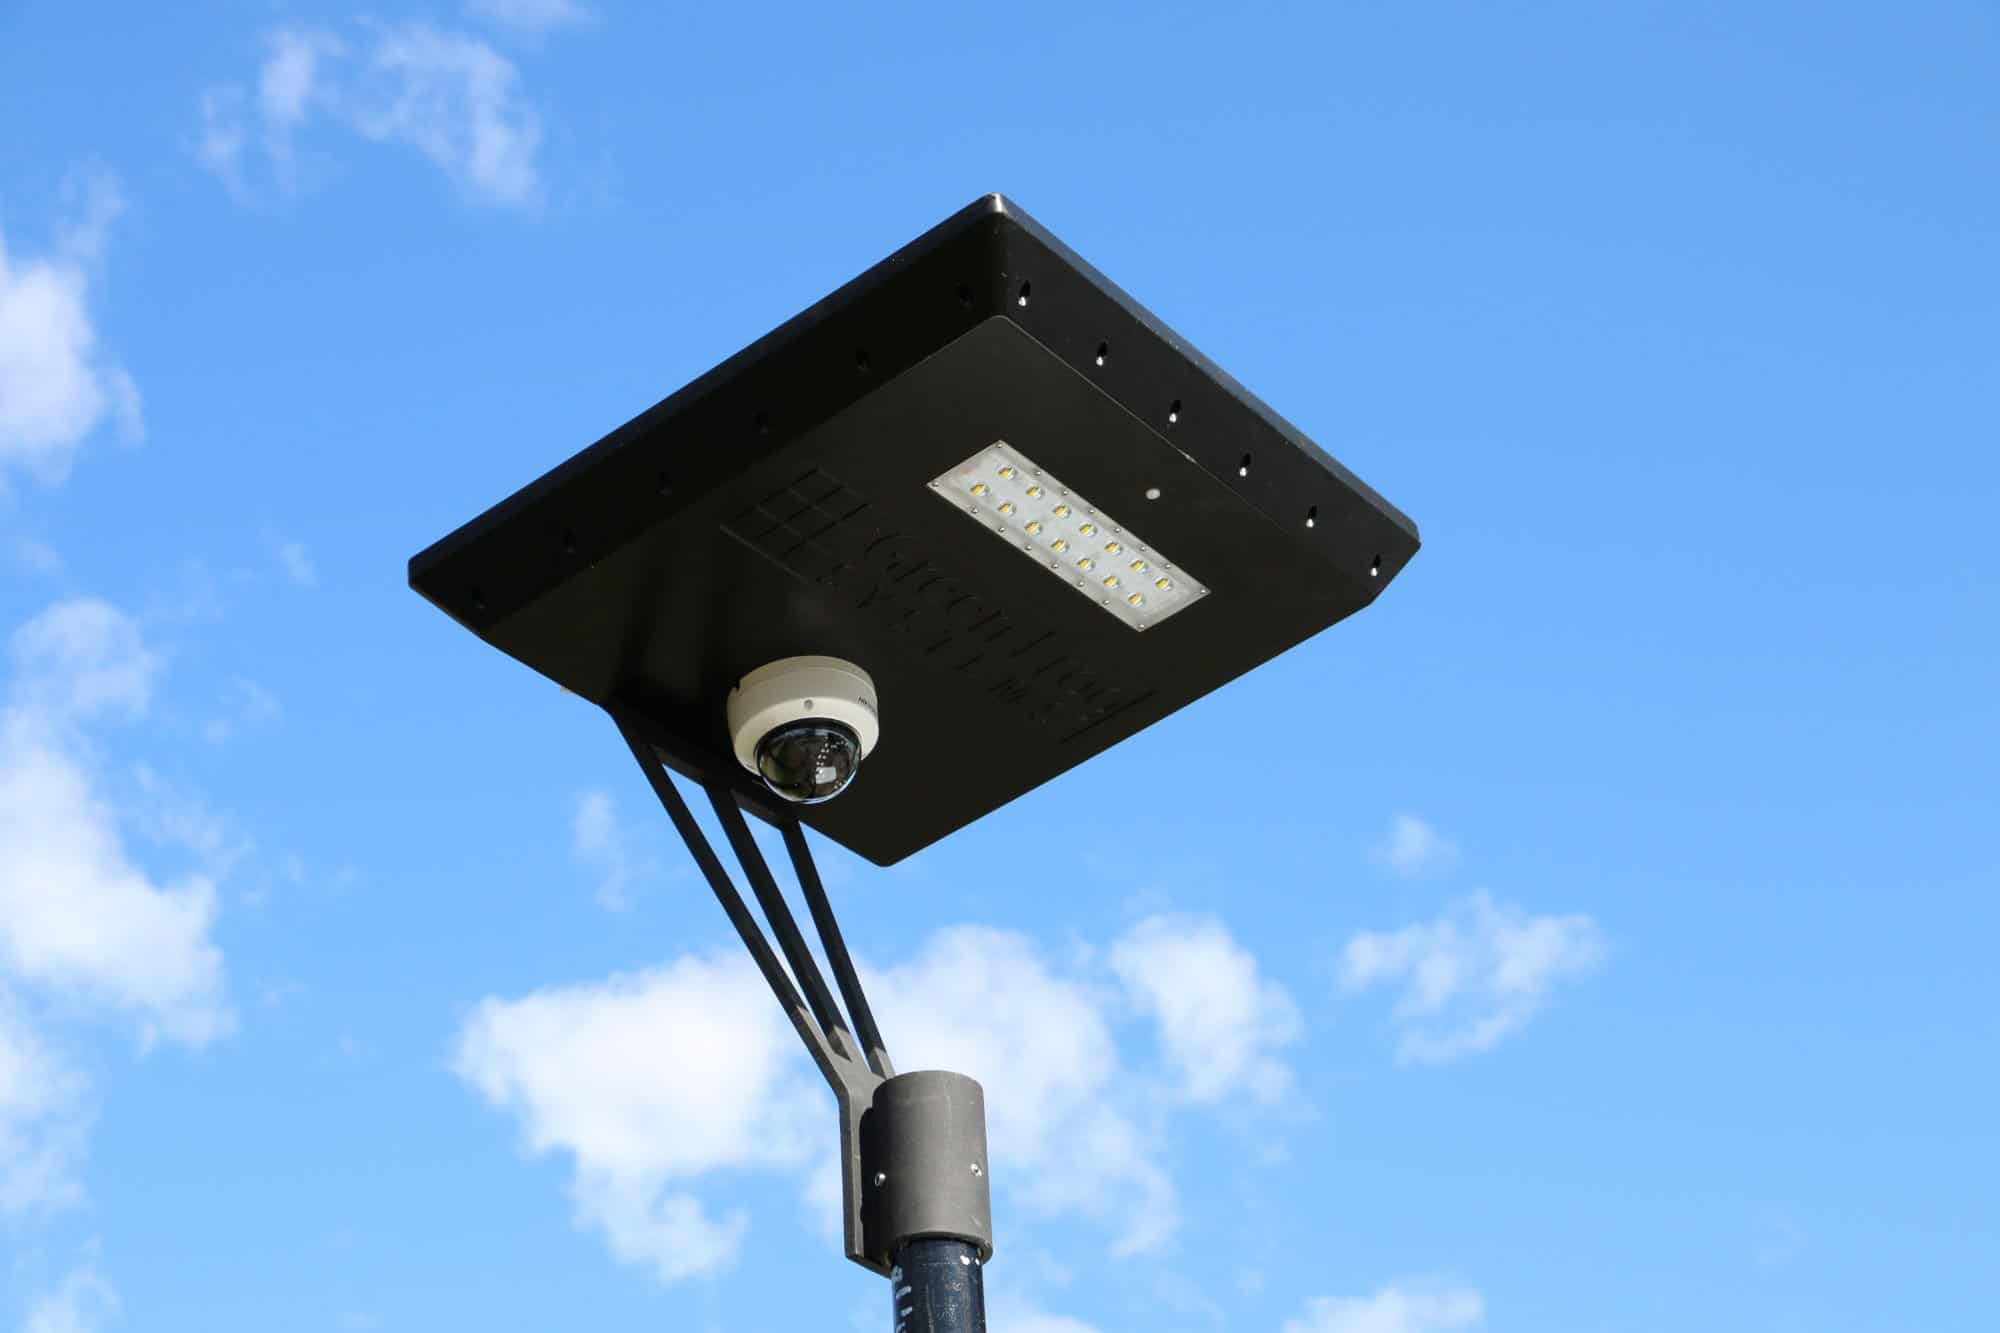 CCTV camera on solar powered light